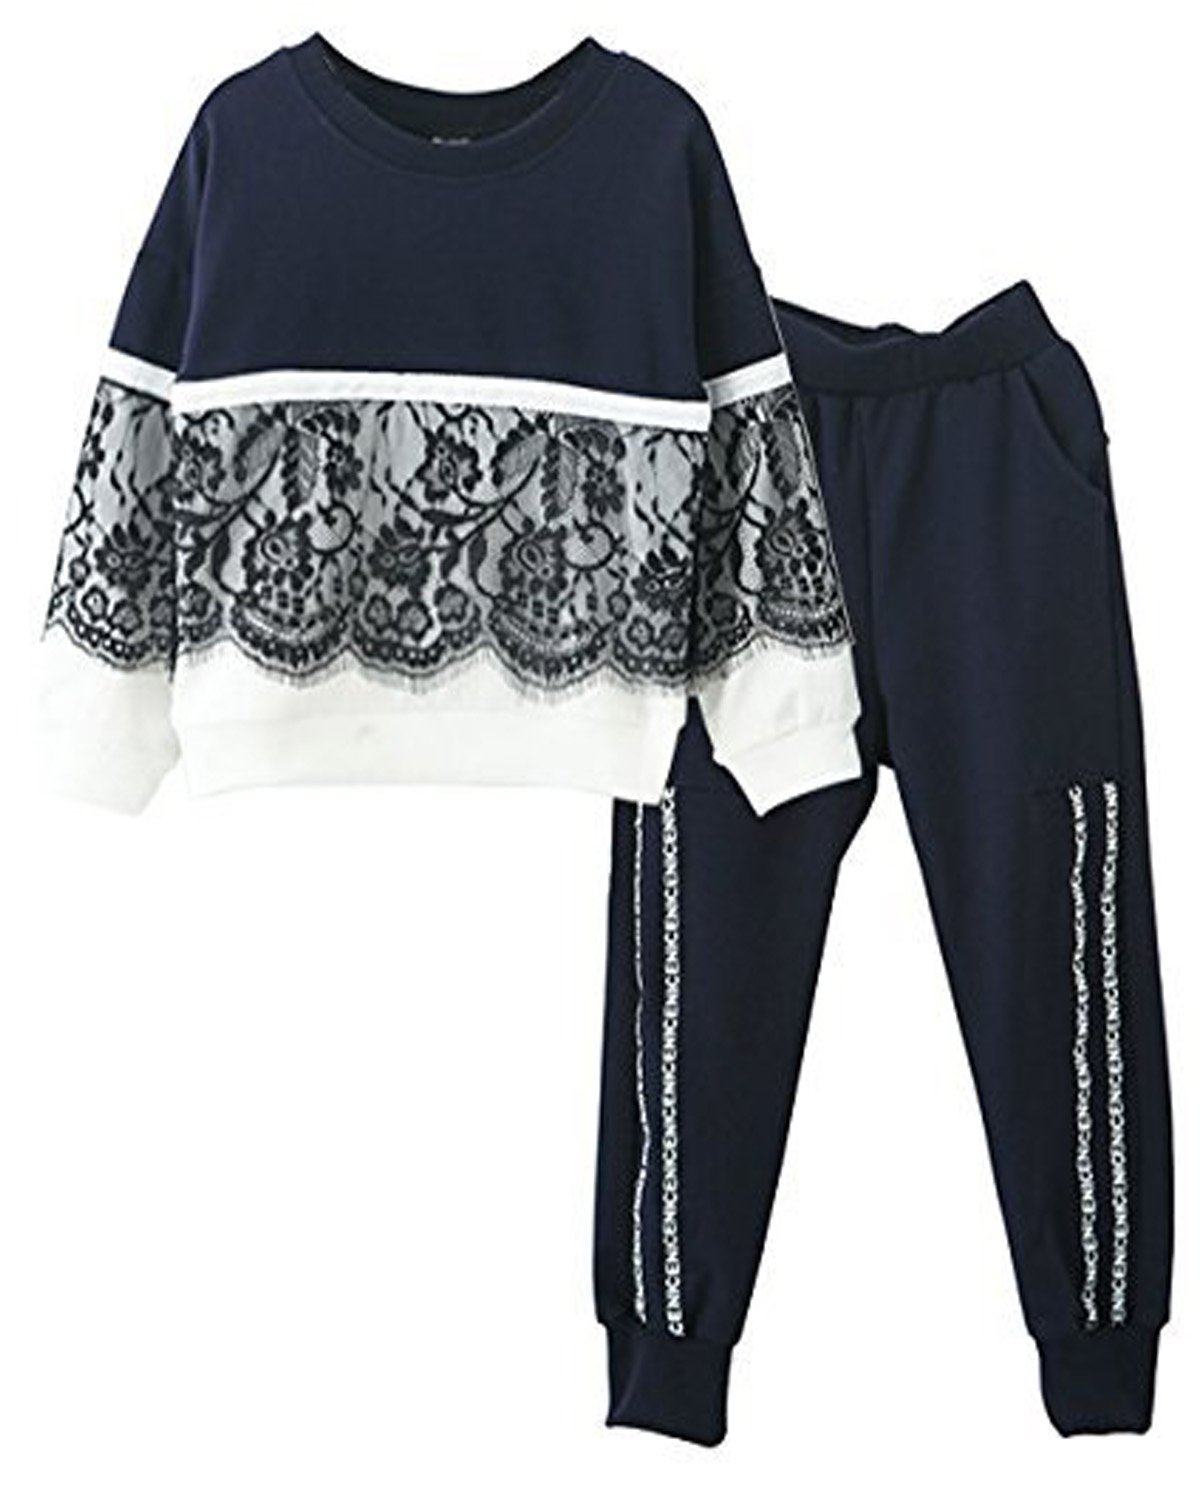 Little Girls Cute Long Sleeve Top & Pant Clothes Set